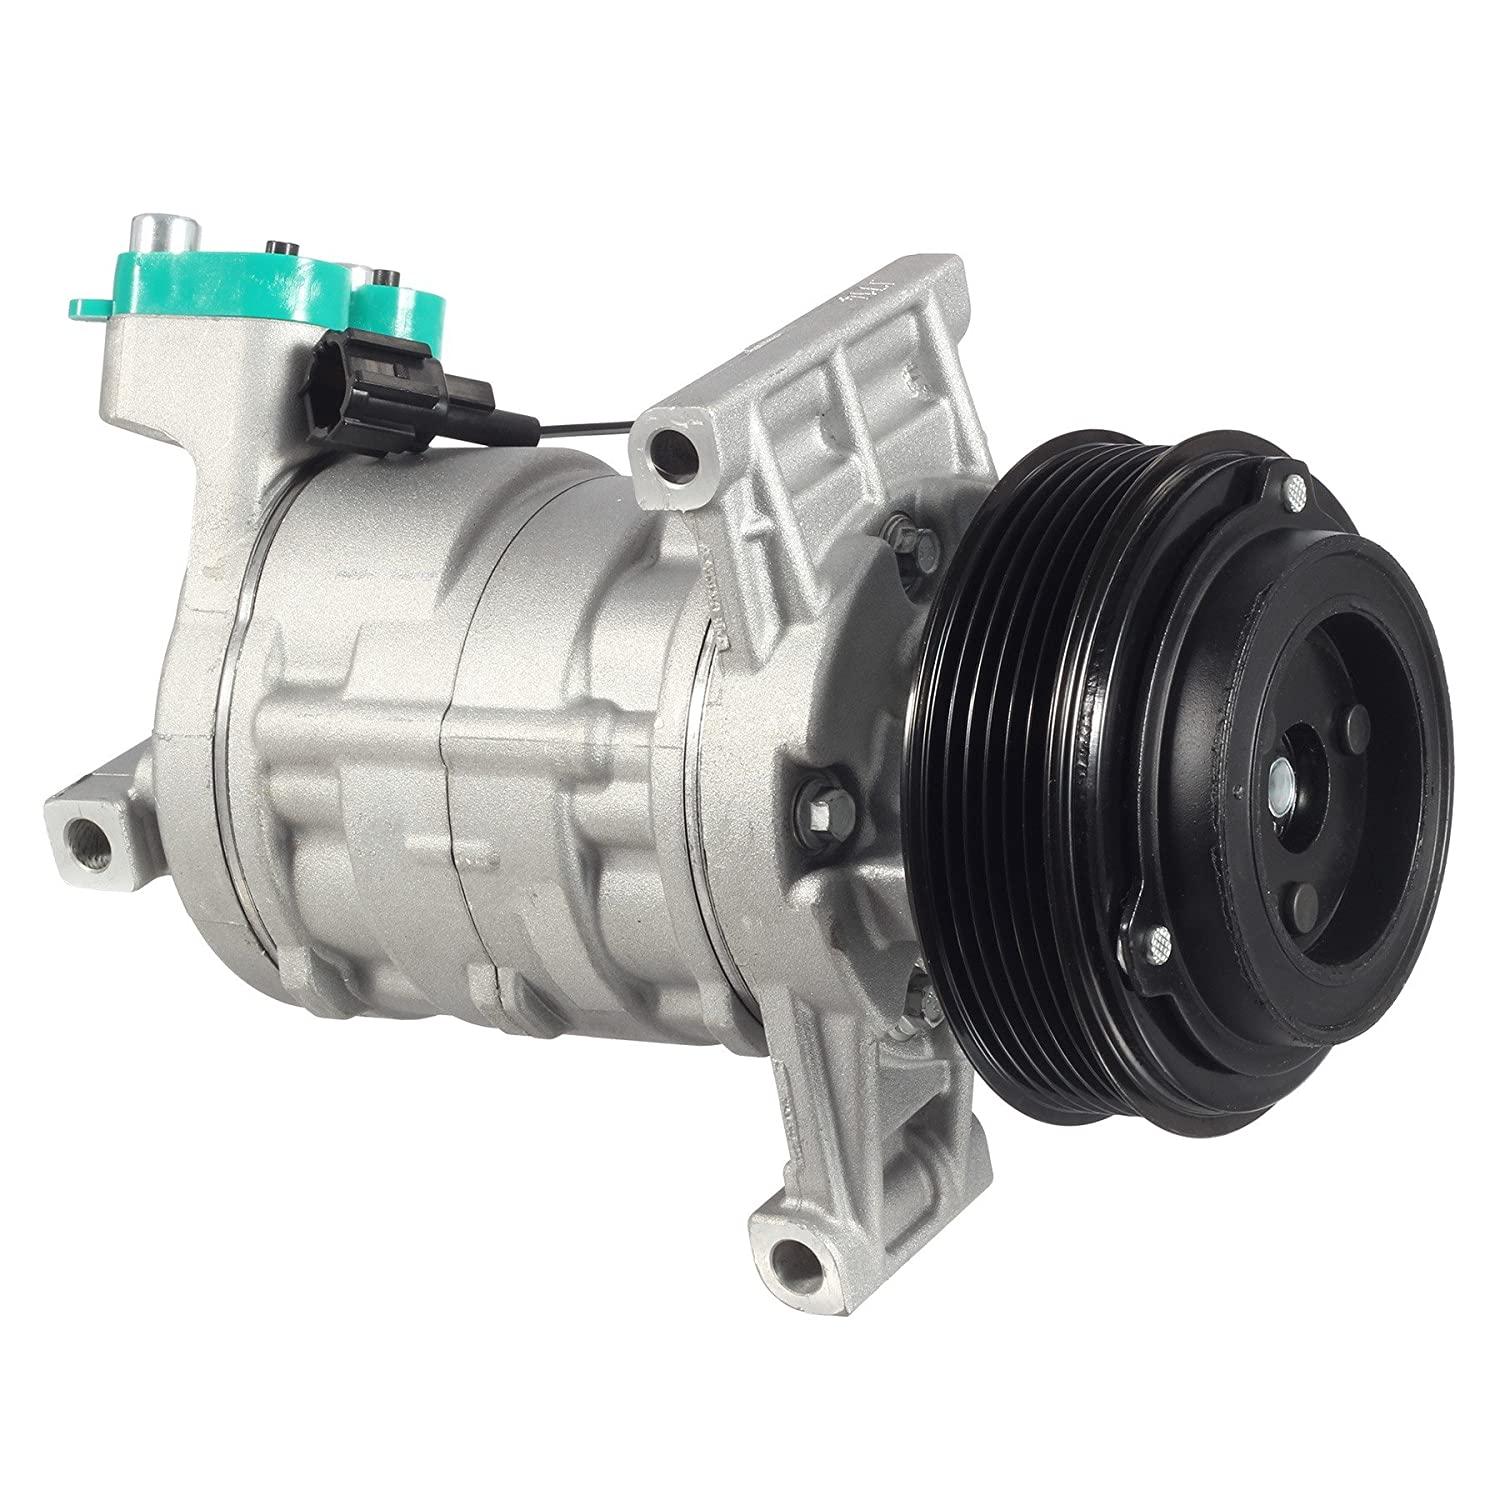 Amazon.com: AC Compressor & A/C Clutch CO 11155C 57887 Replacement for 2007 2008 2009 2010 2011 Nissan Versa 1.8L: Automotive